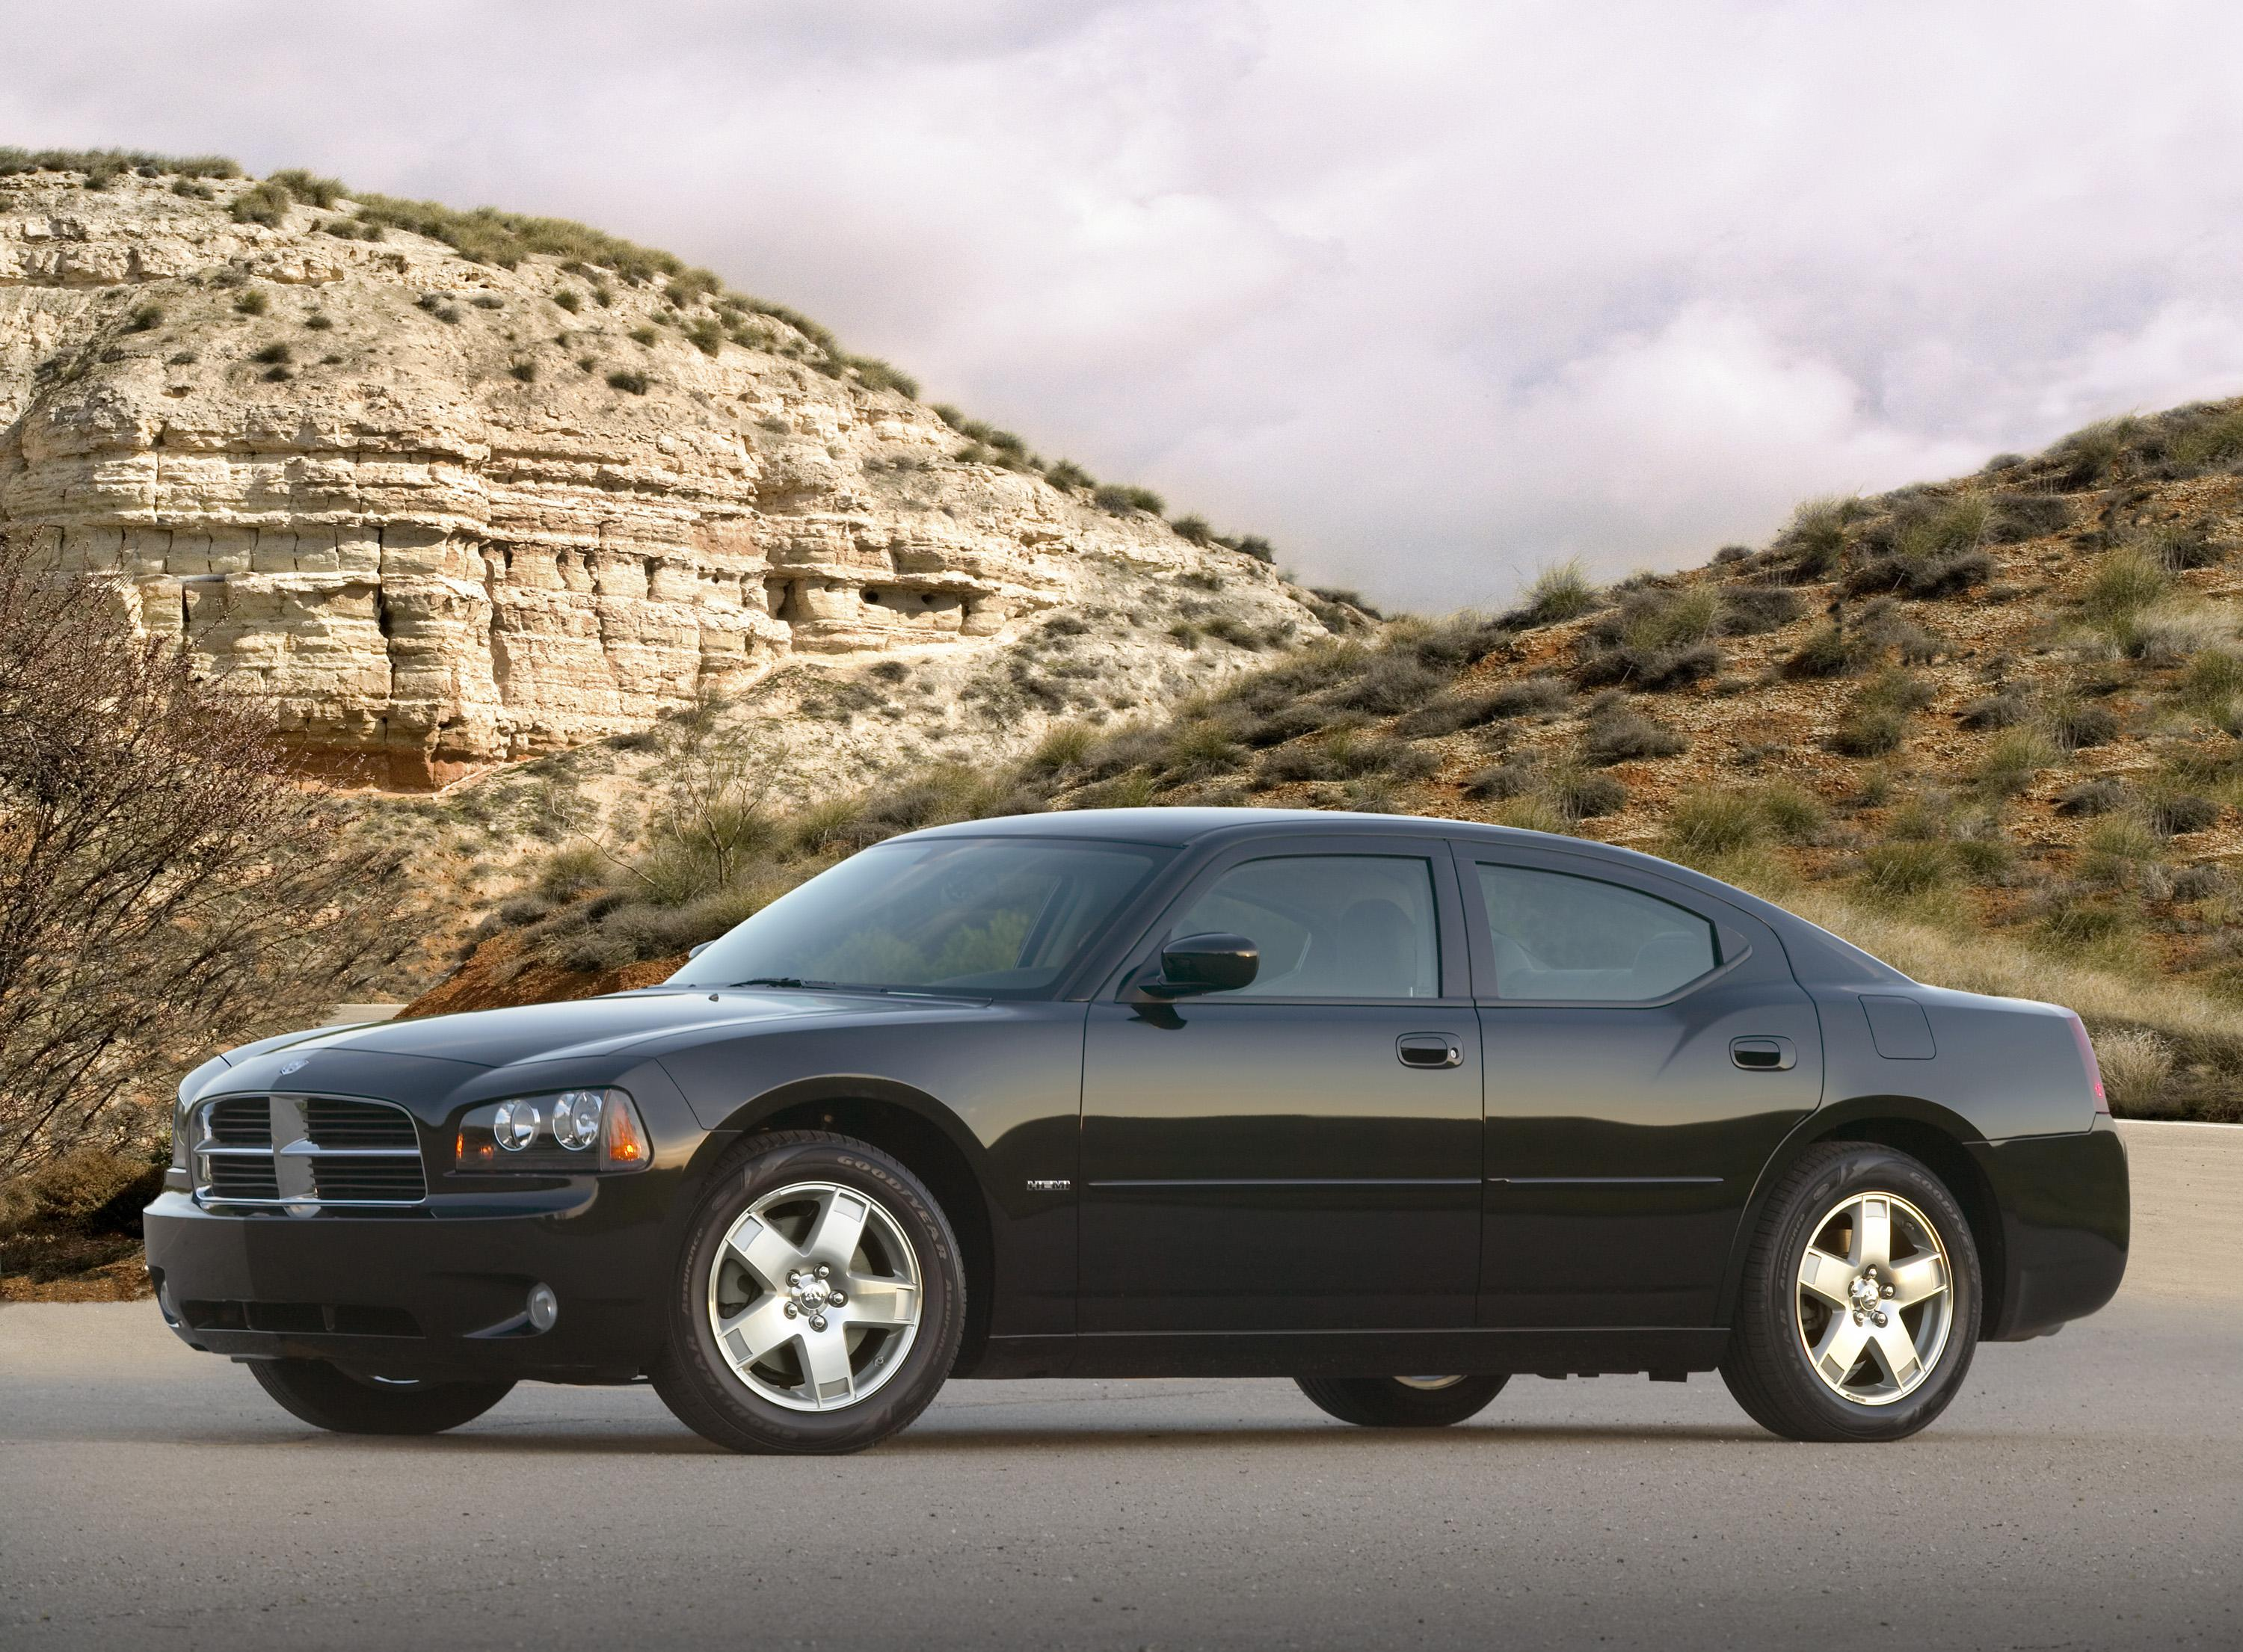 2007 Dodge Charger #13